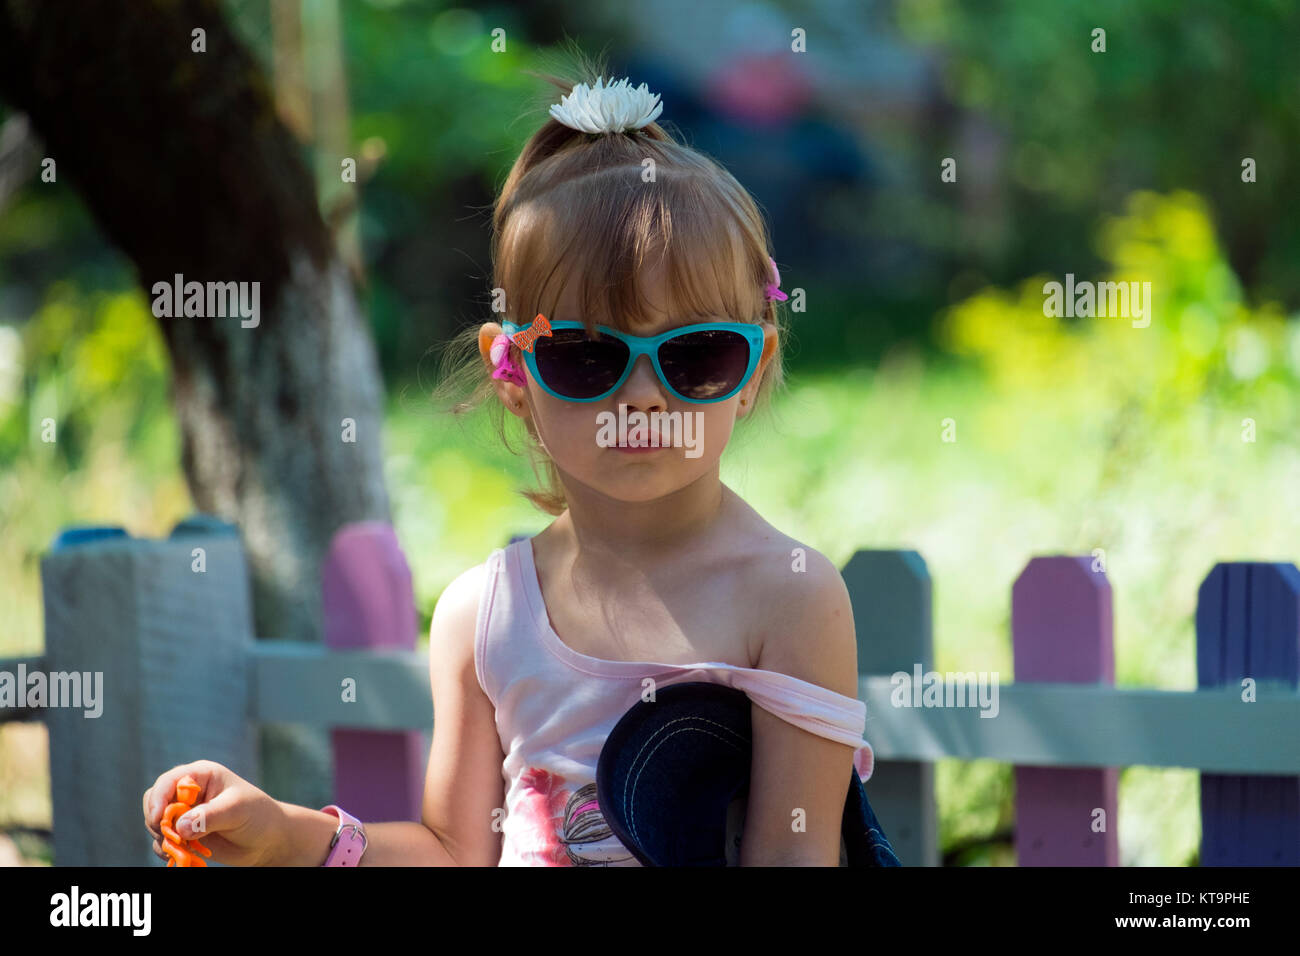 Small fashionista in the glasses with her bare shoulder - Stock Image